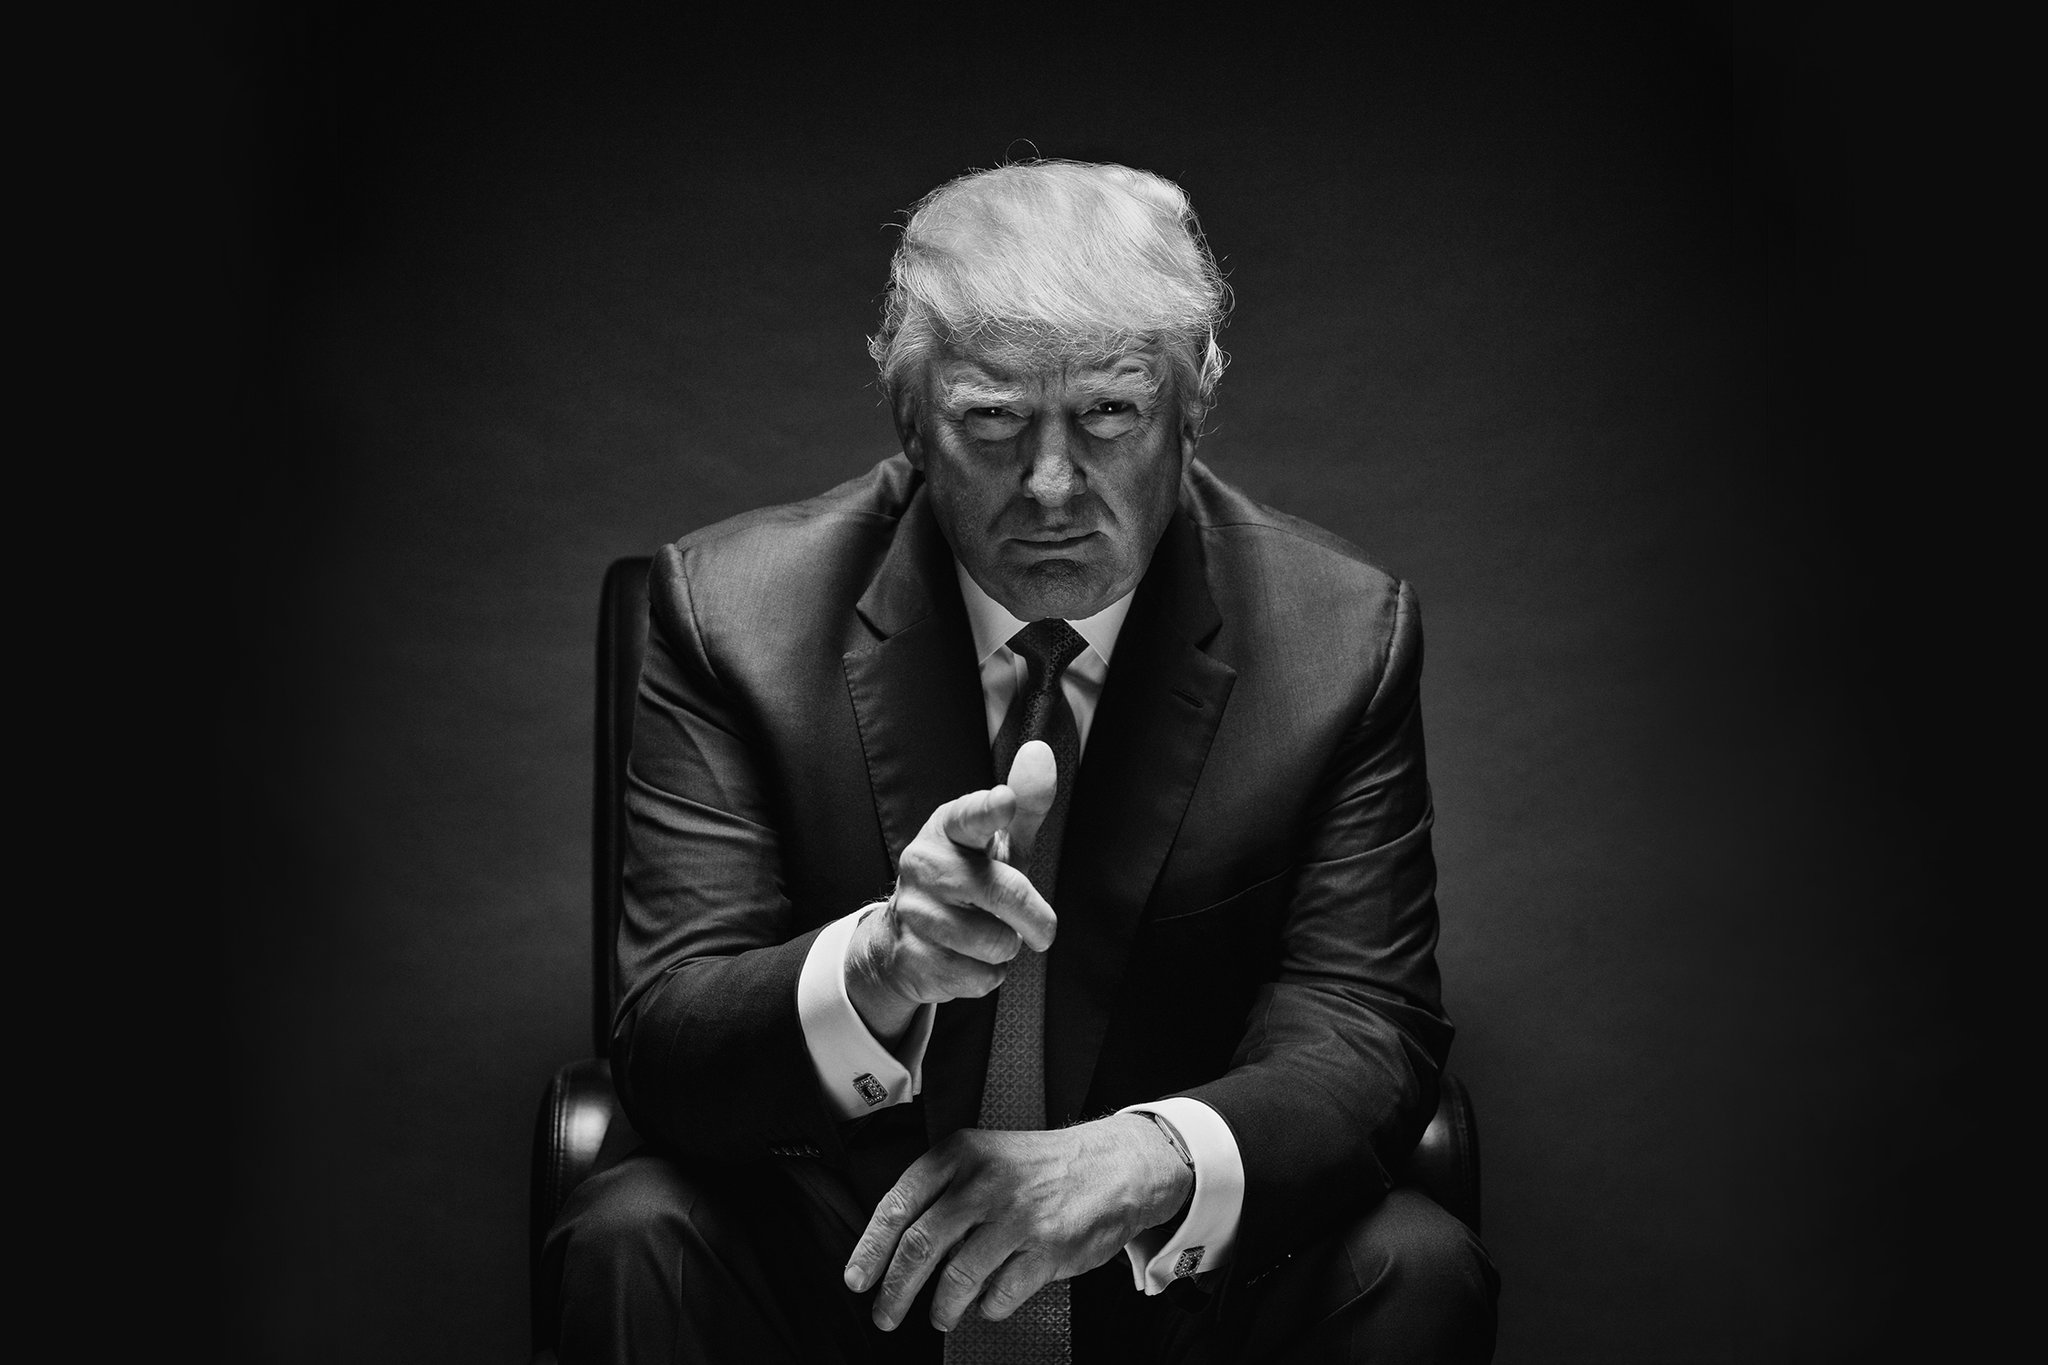 donald trump wallpaper  Donald Trump HD Wallpaper | Background Image | 2048x1365 | ID:708187 ...